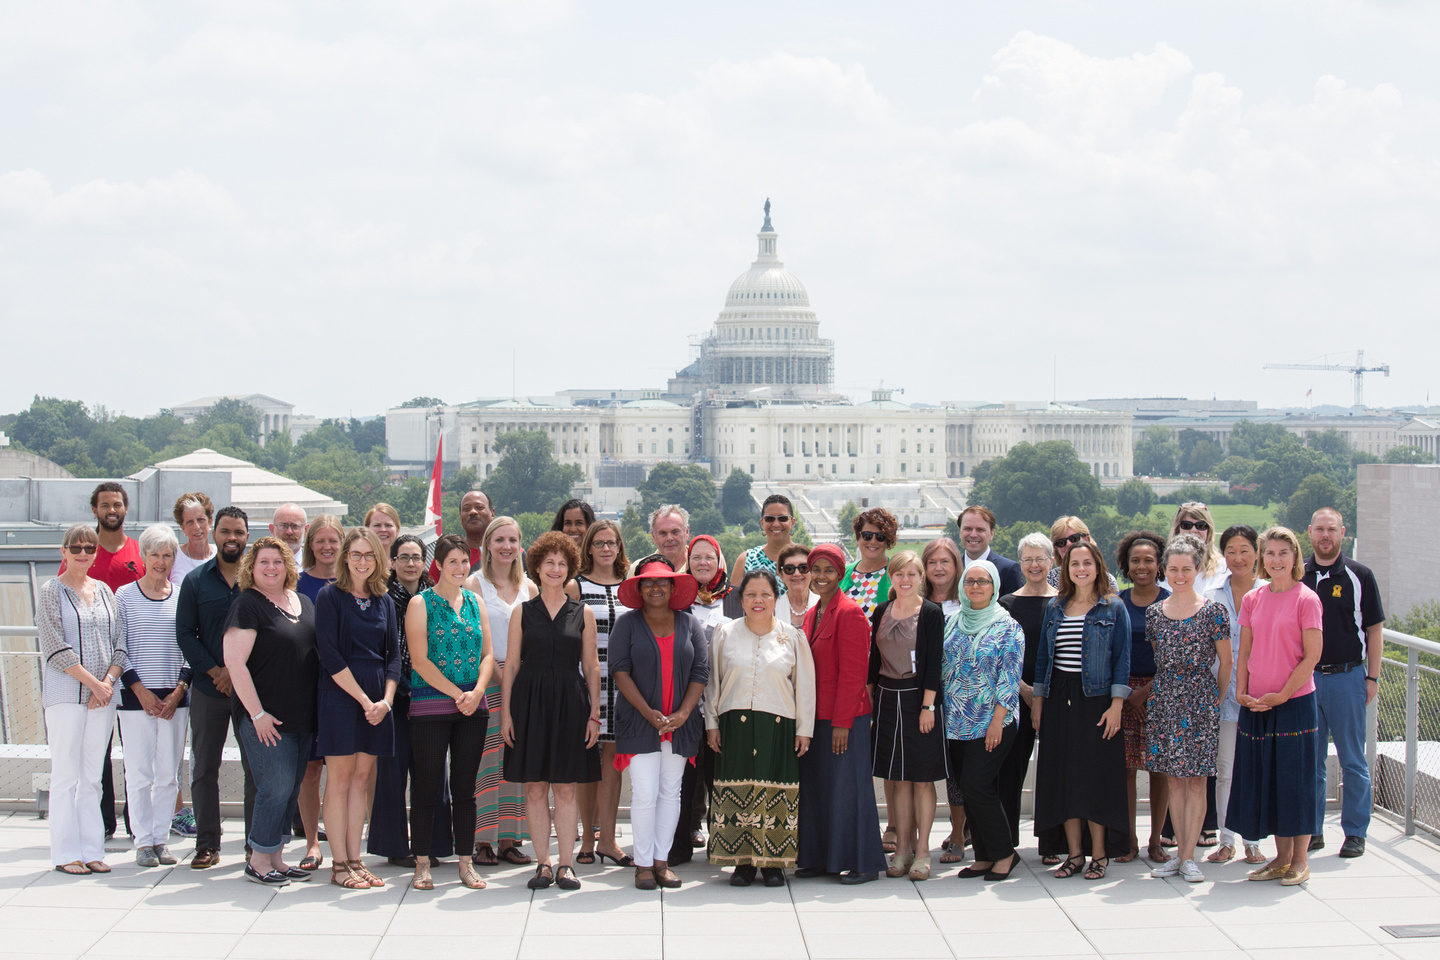 A large group of teachers in front of the U.S. Capitol Building